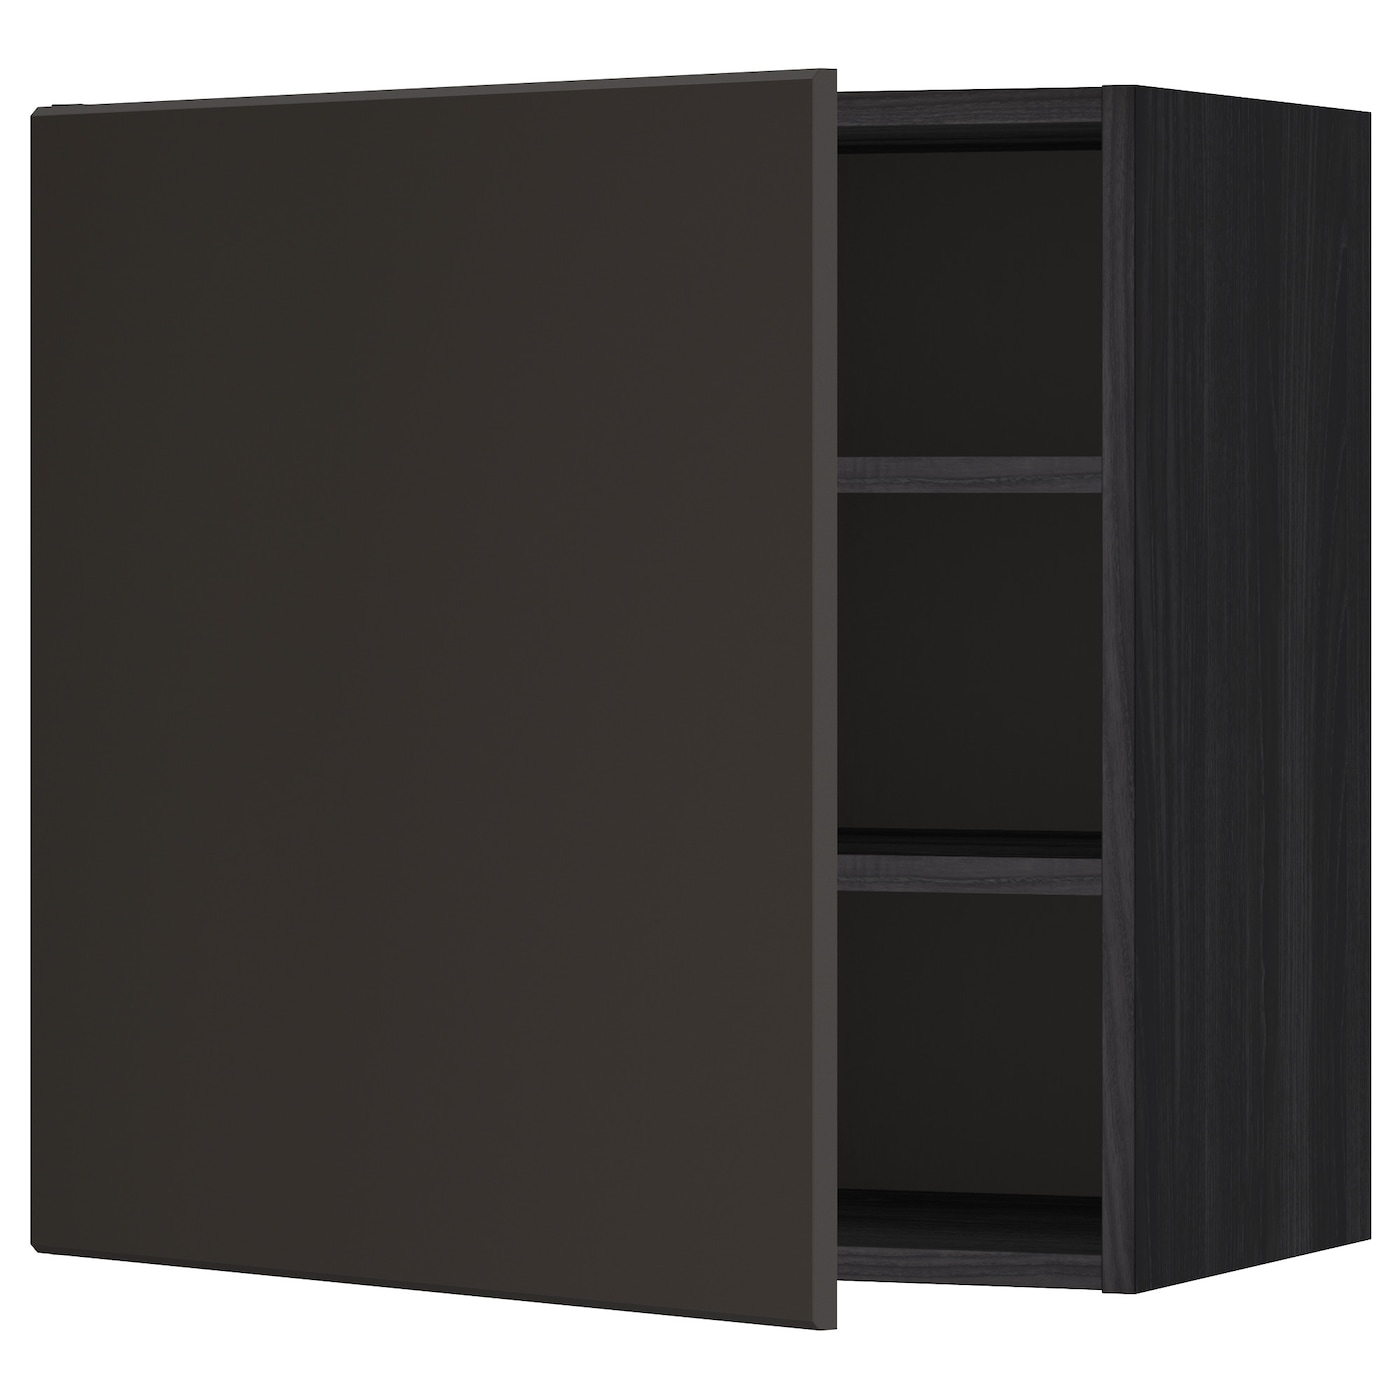 Metod Wall Cabinet With Shelves: METOD Wall Cabinet With Shelves Black/kungsbacka